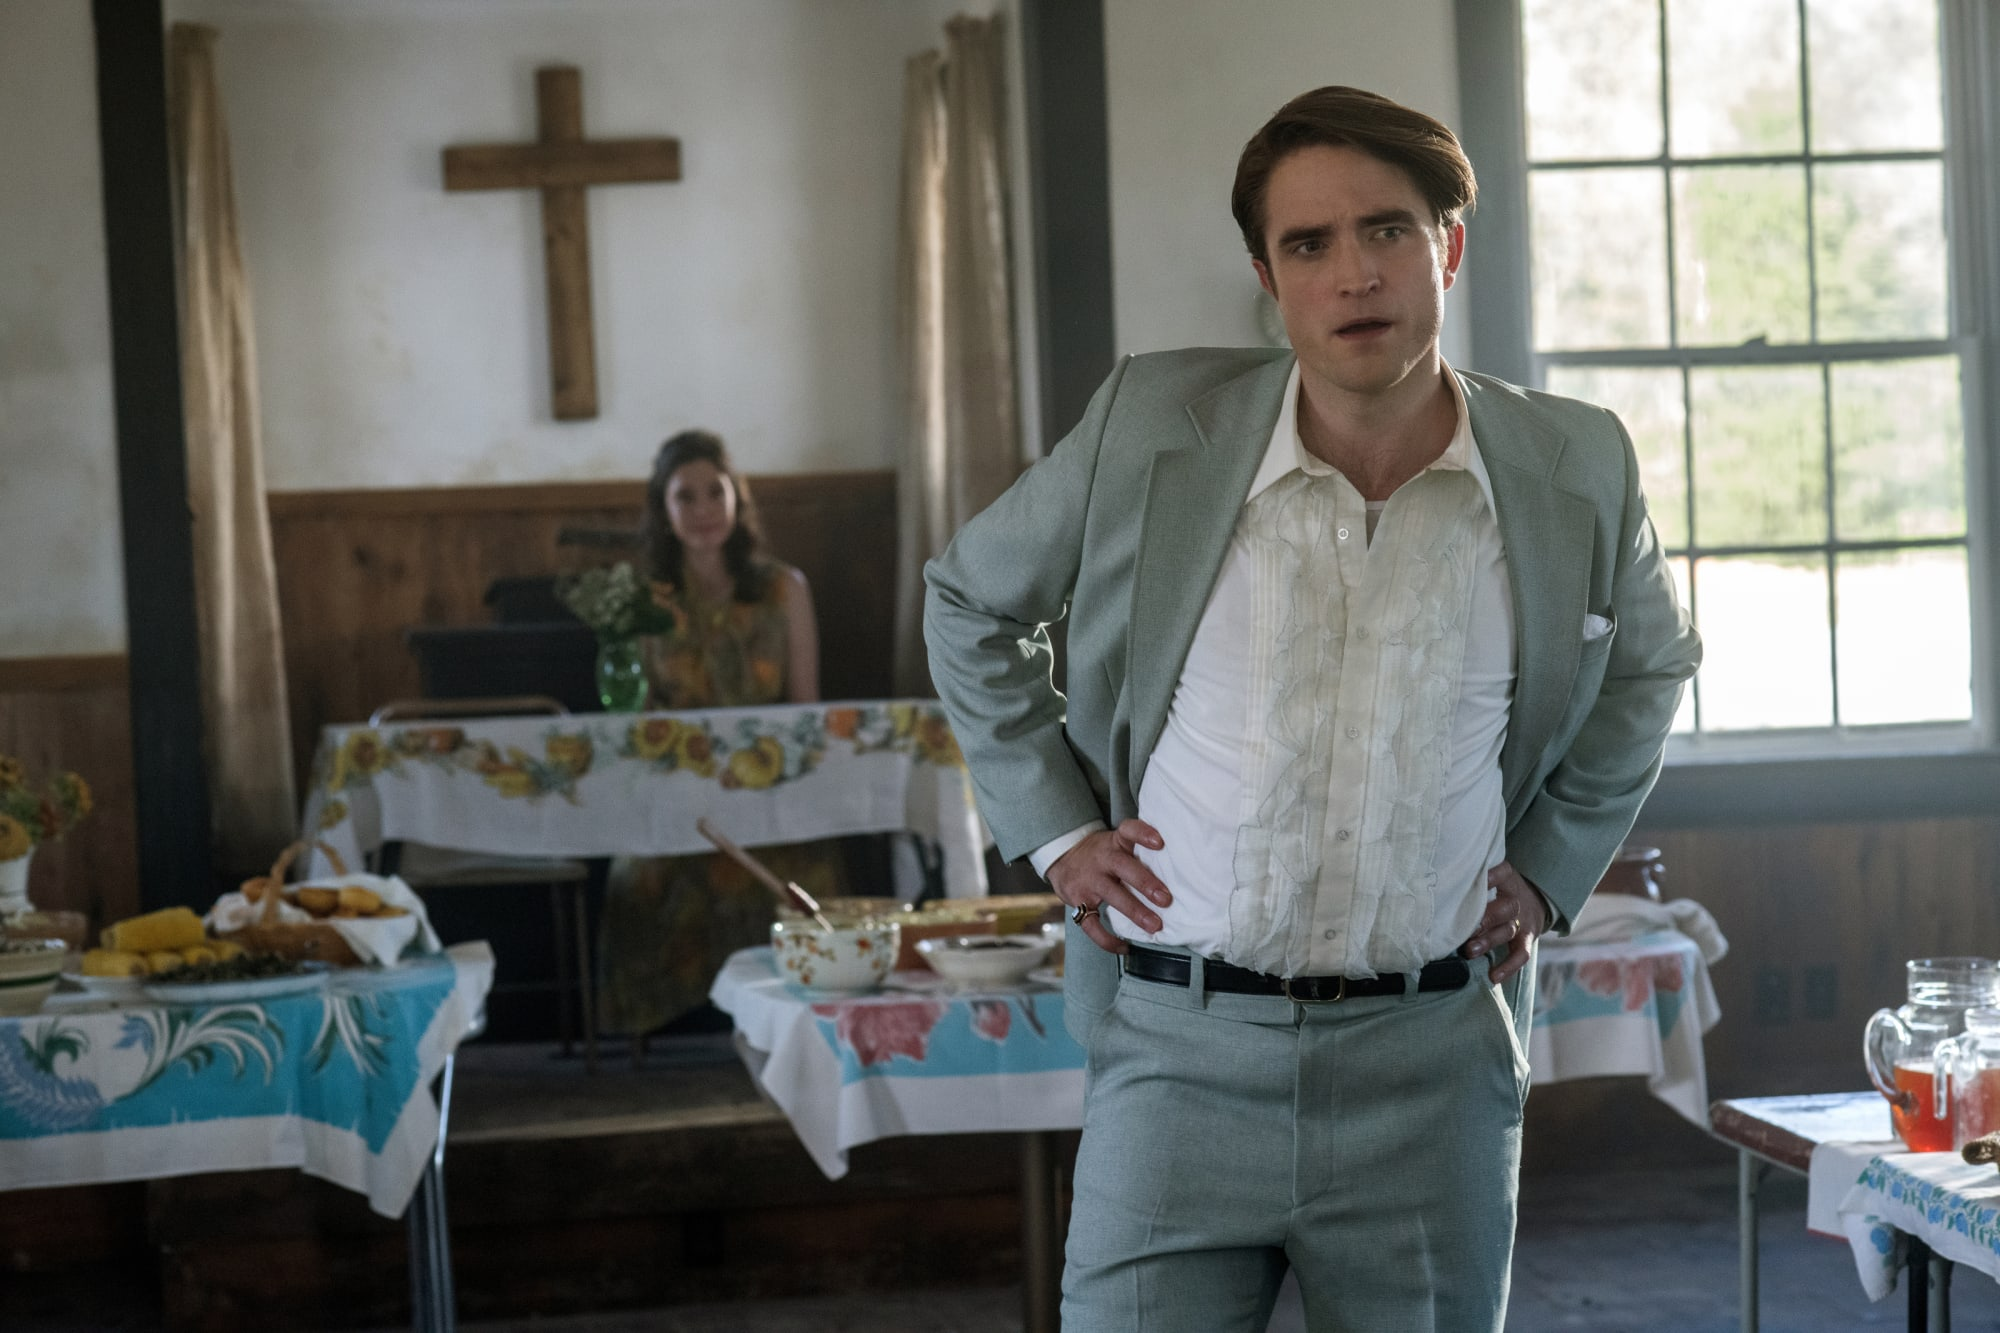 New on Netflix: 10 movies and shows to watch this week, Sept. 14